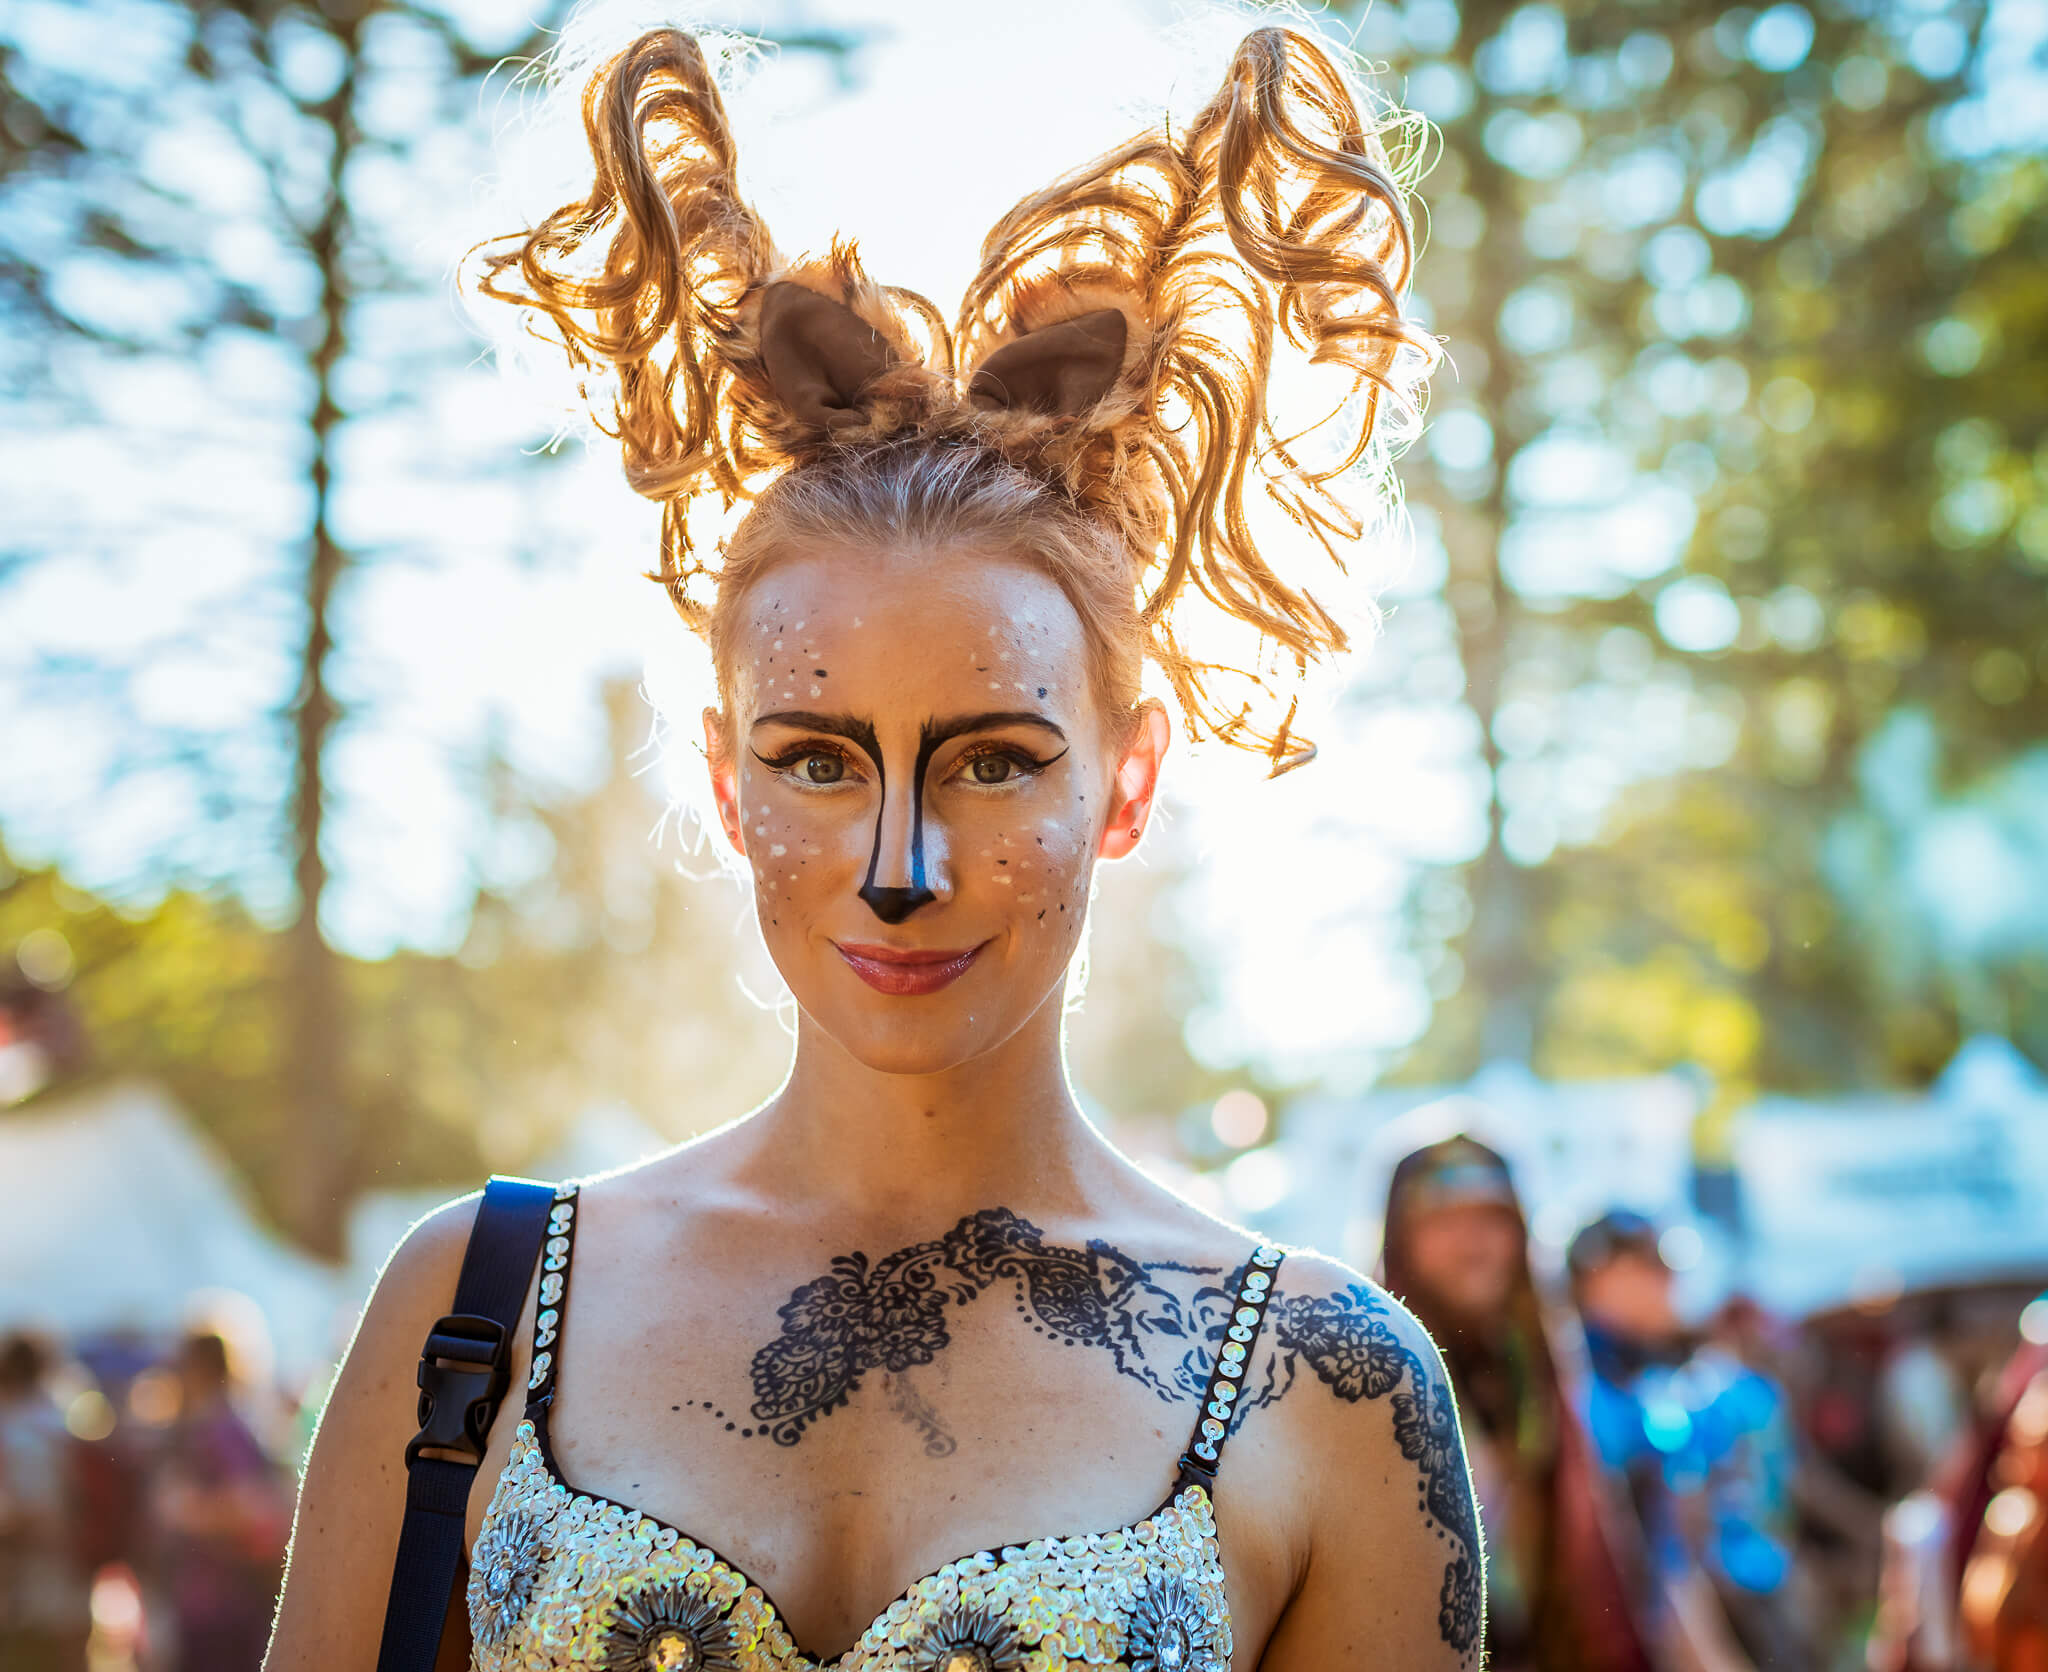 Electric Forest 2018: Rothbury, Michigan – photos by Electric ForestEFF2018 0623 200529 LCW 1